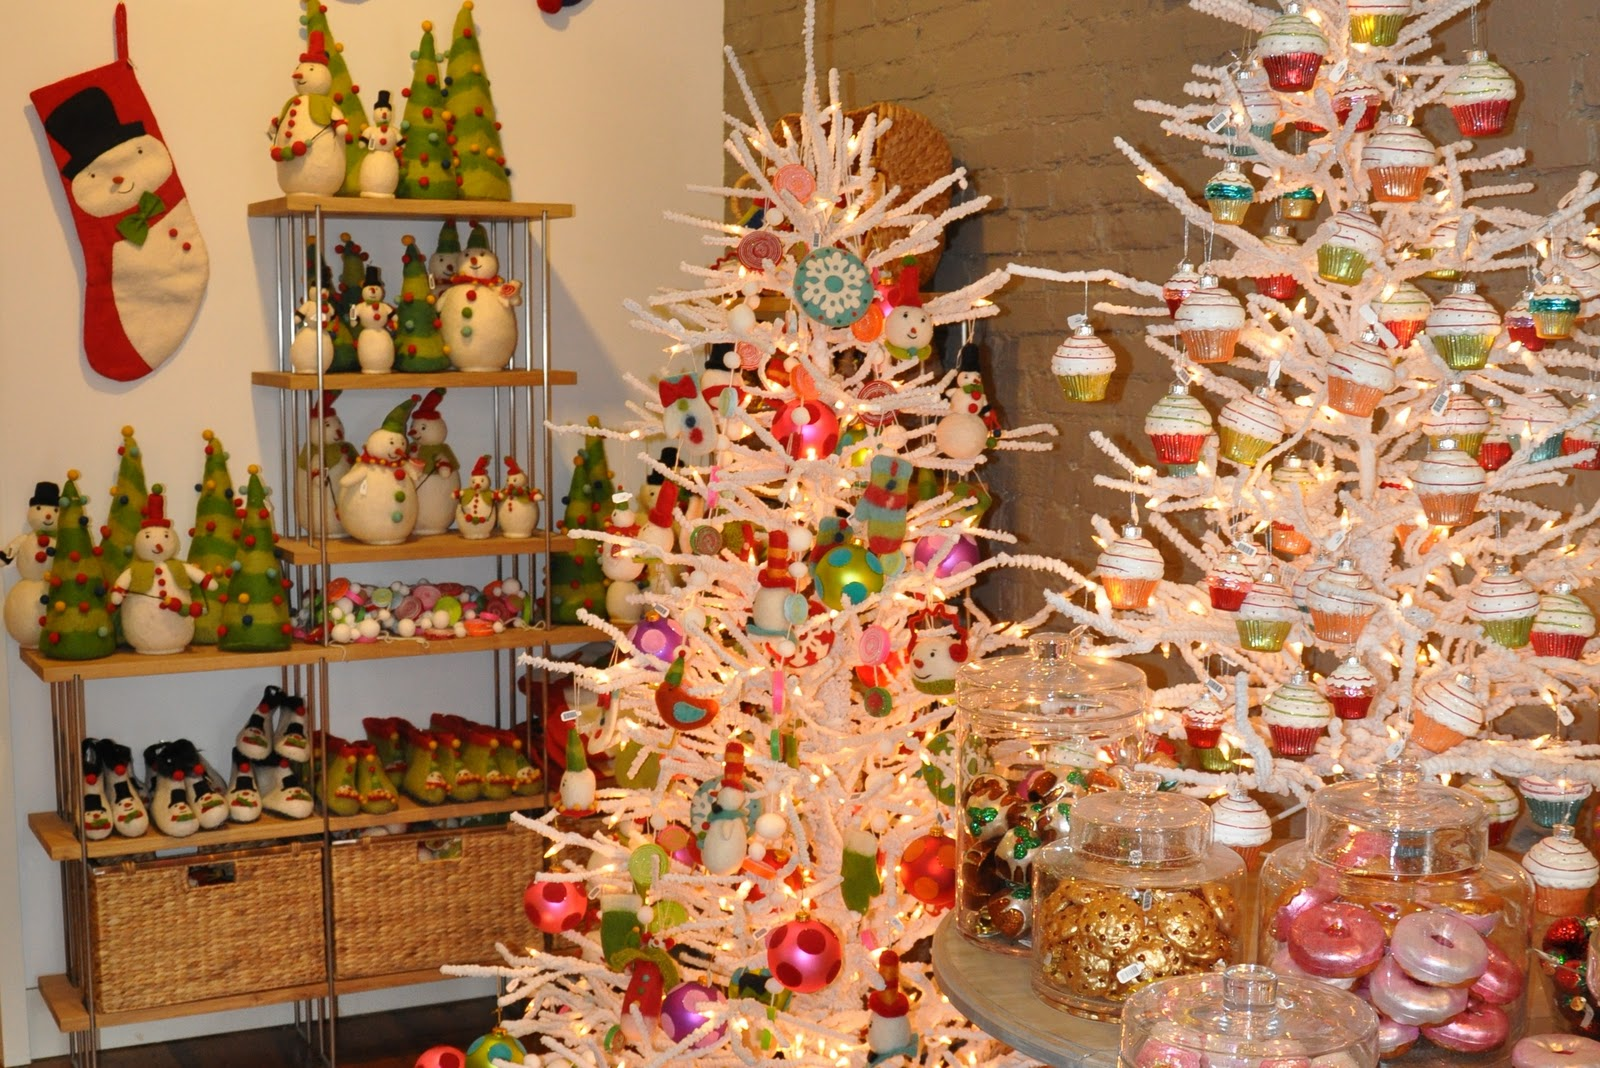 Centro Garden Newly Opened And Worth The Wait This Gorgeous Shop Is Filled With Home Decor Items Greenery Gifts That Will Dazzle All Your Senses